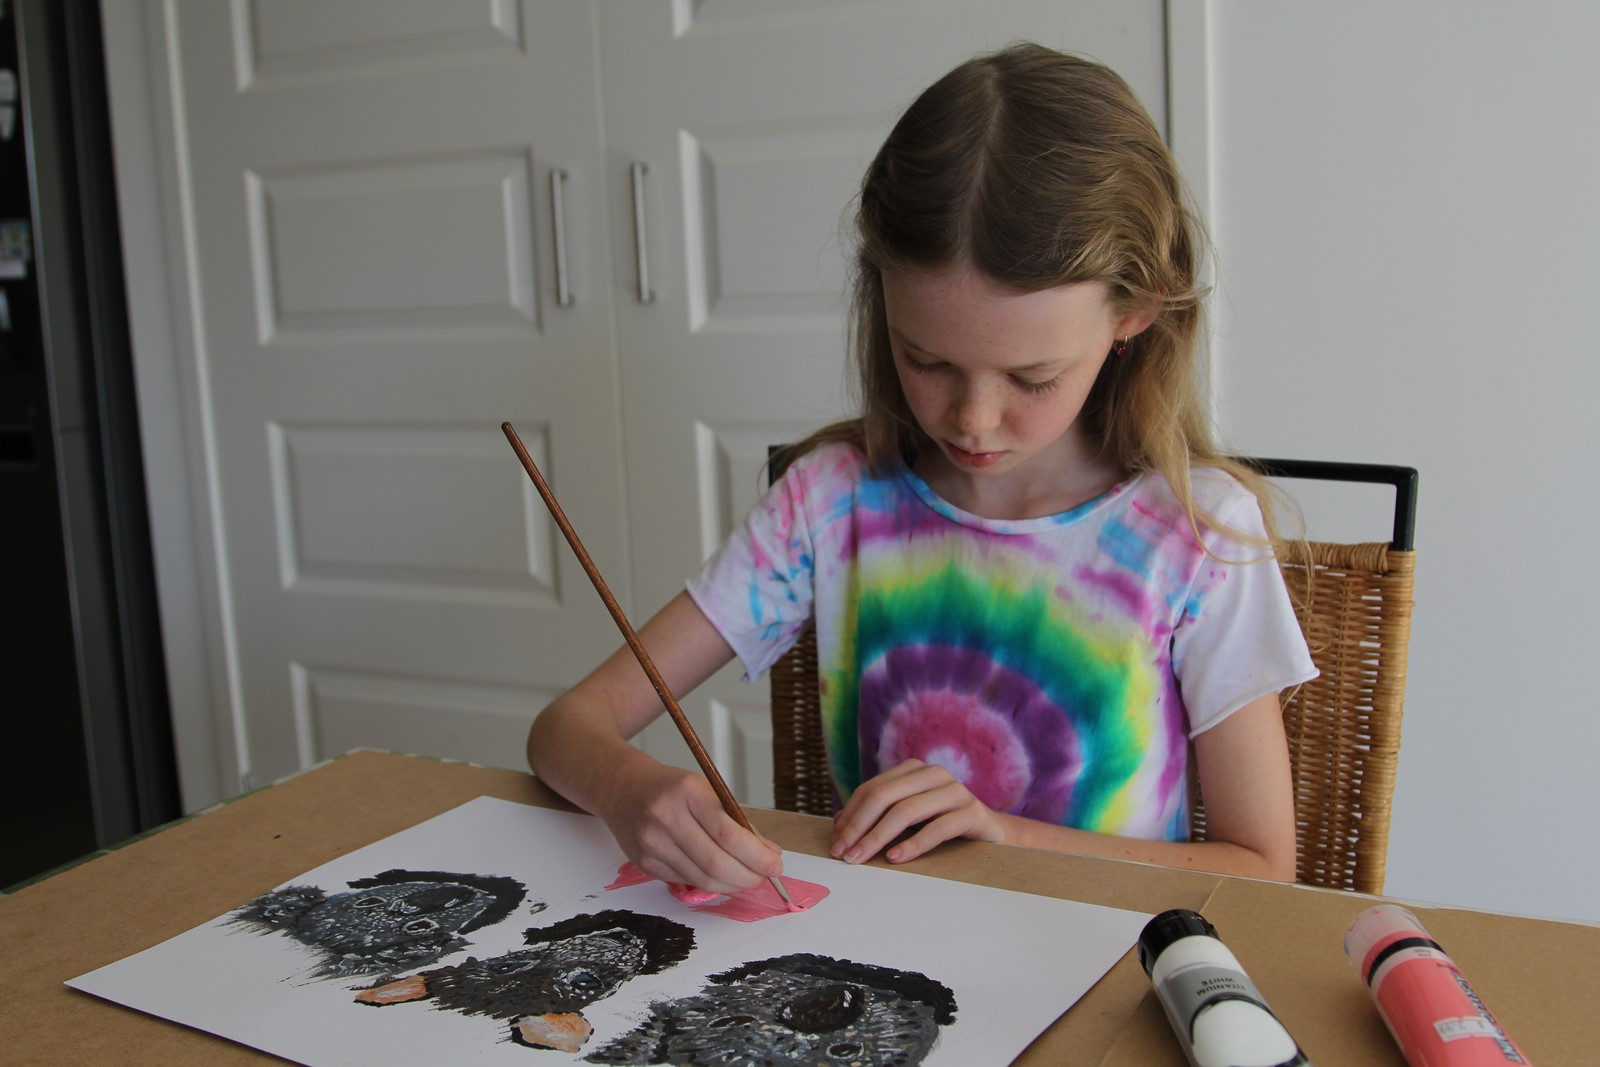 Girl with blonde hair painting native Australian animals